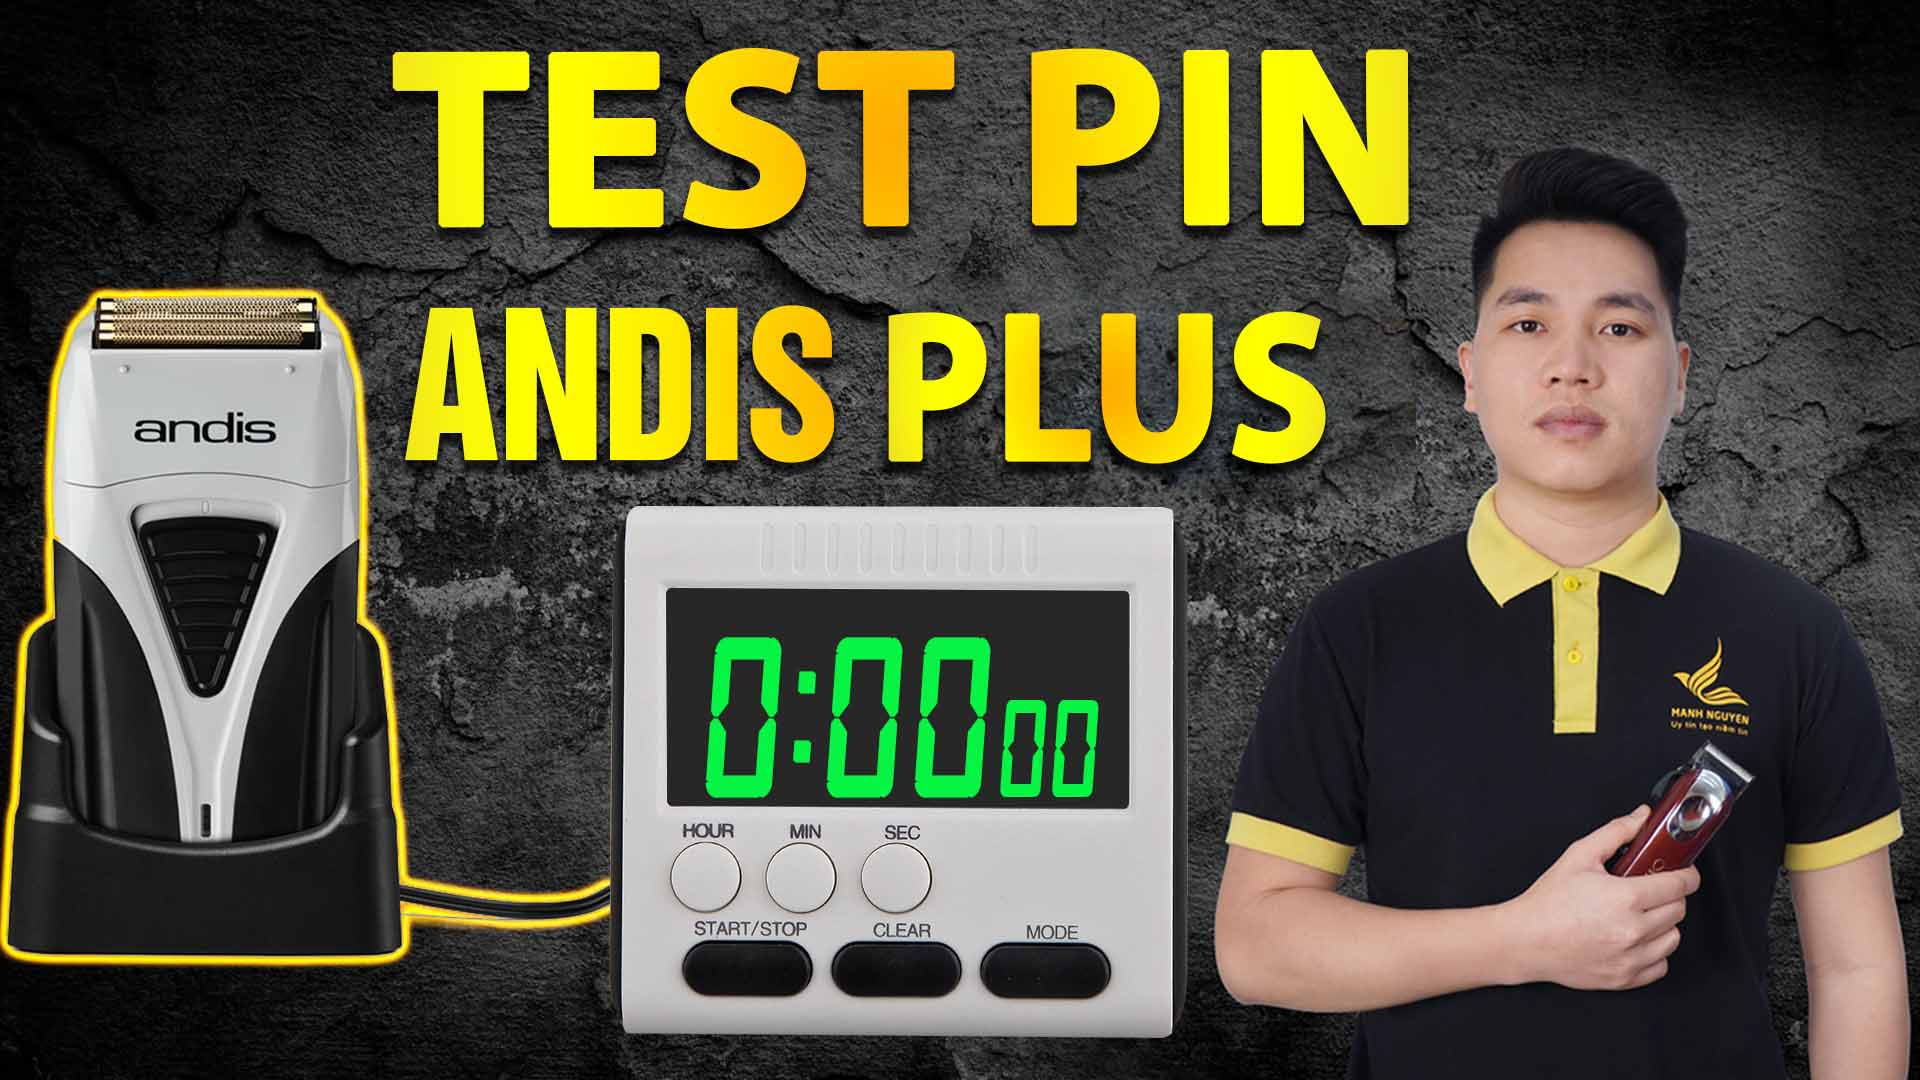 test pin cao kho andis plus (1)